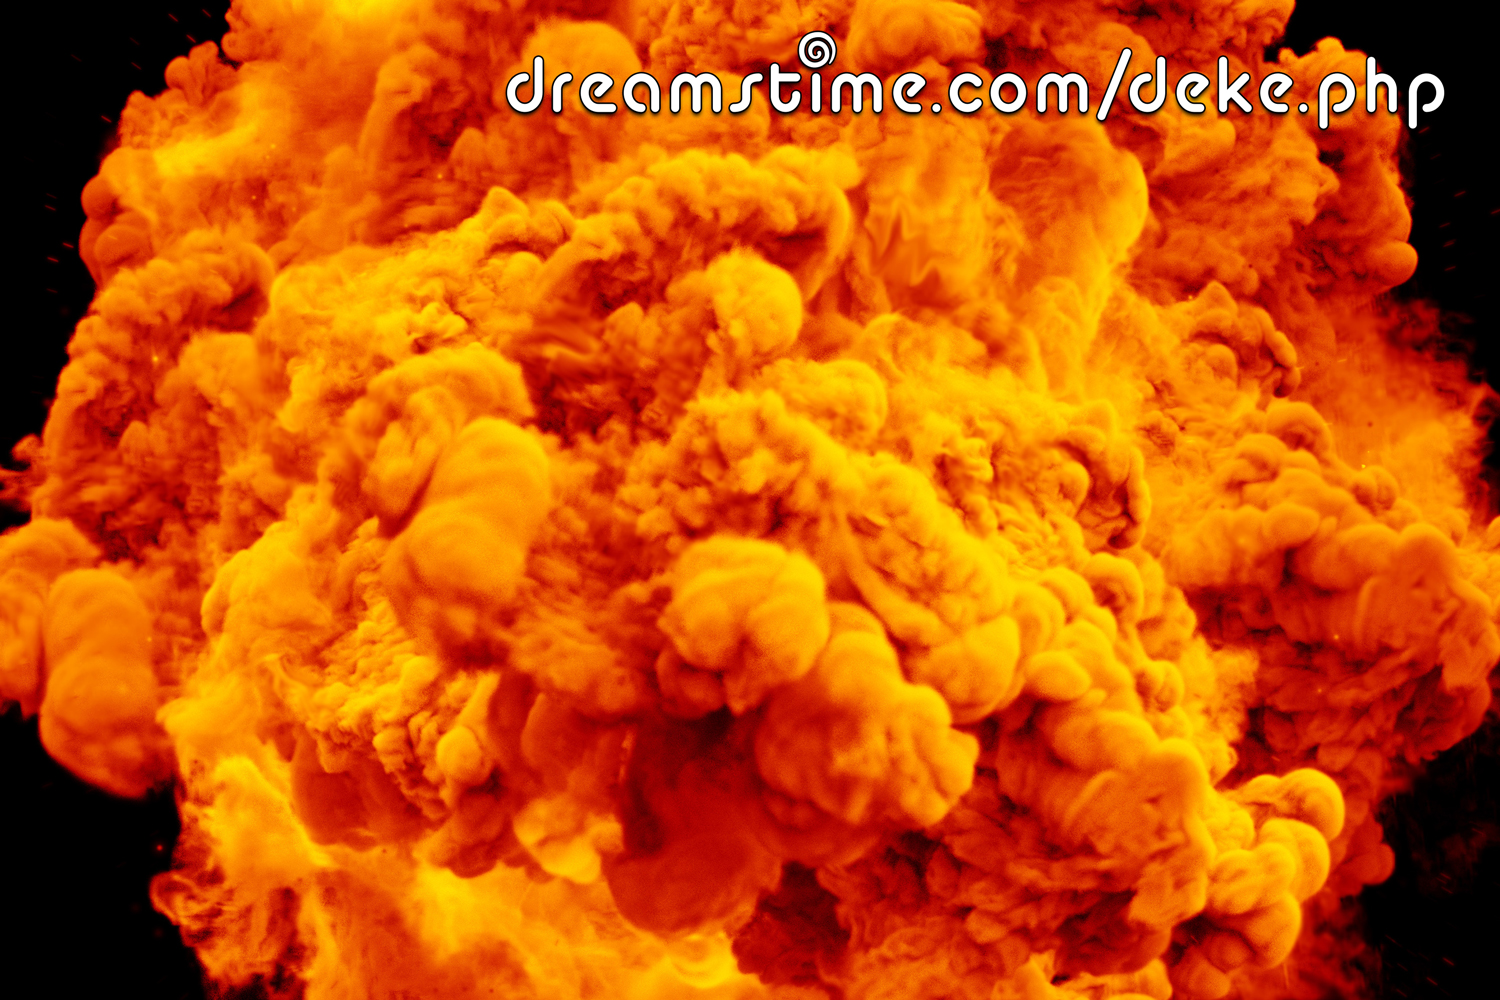 A giant orange explosion from www.dreamstime.com/deke/php